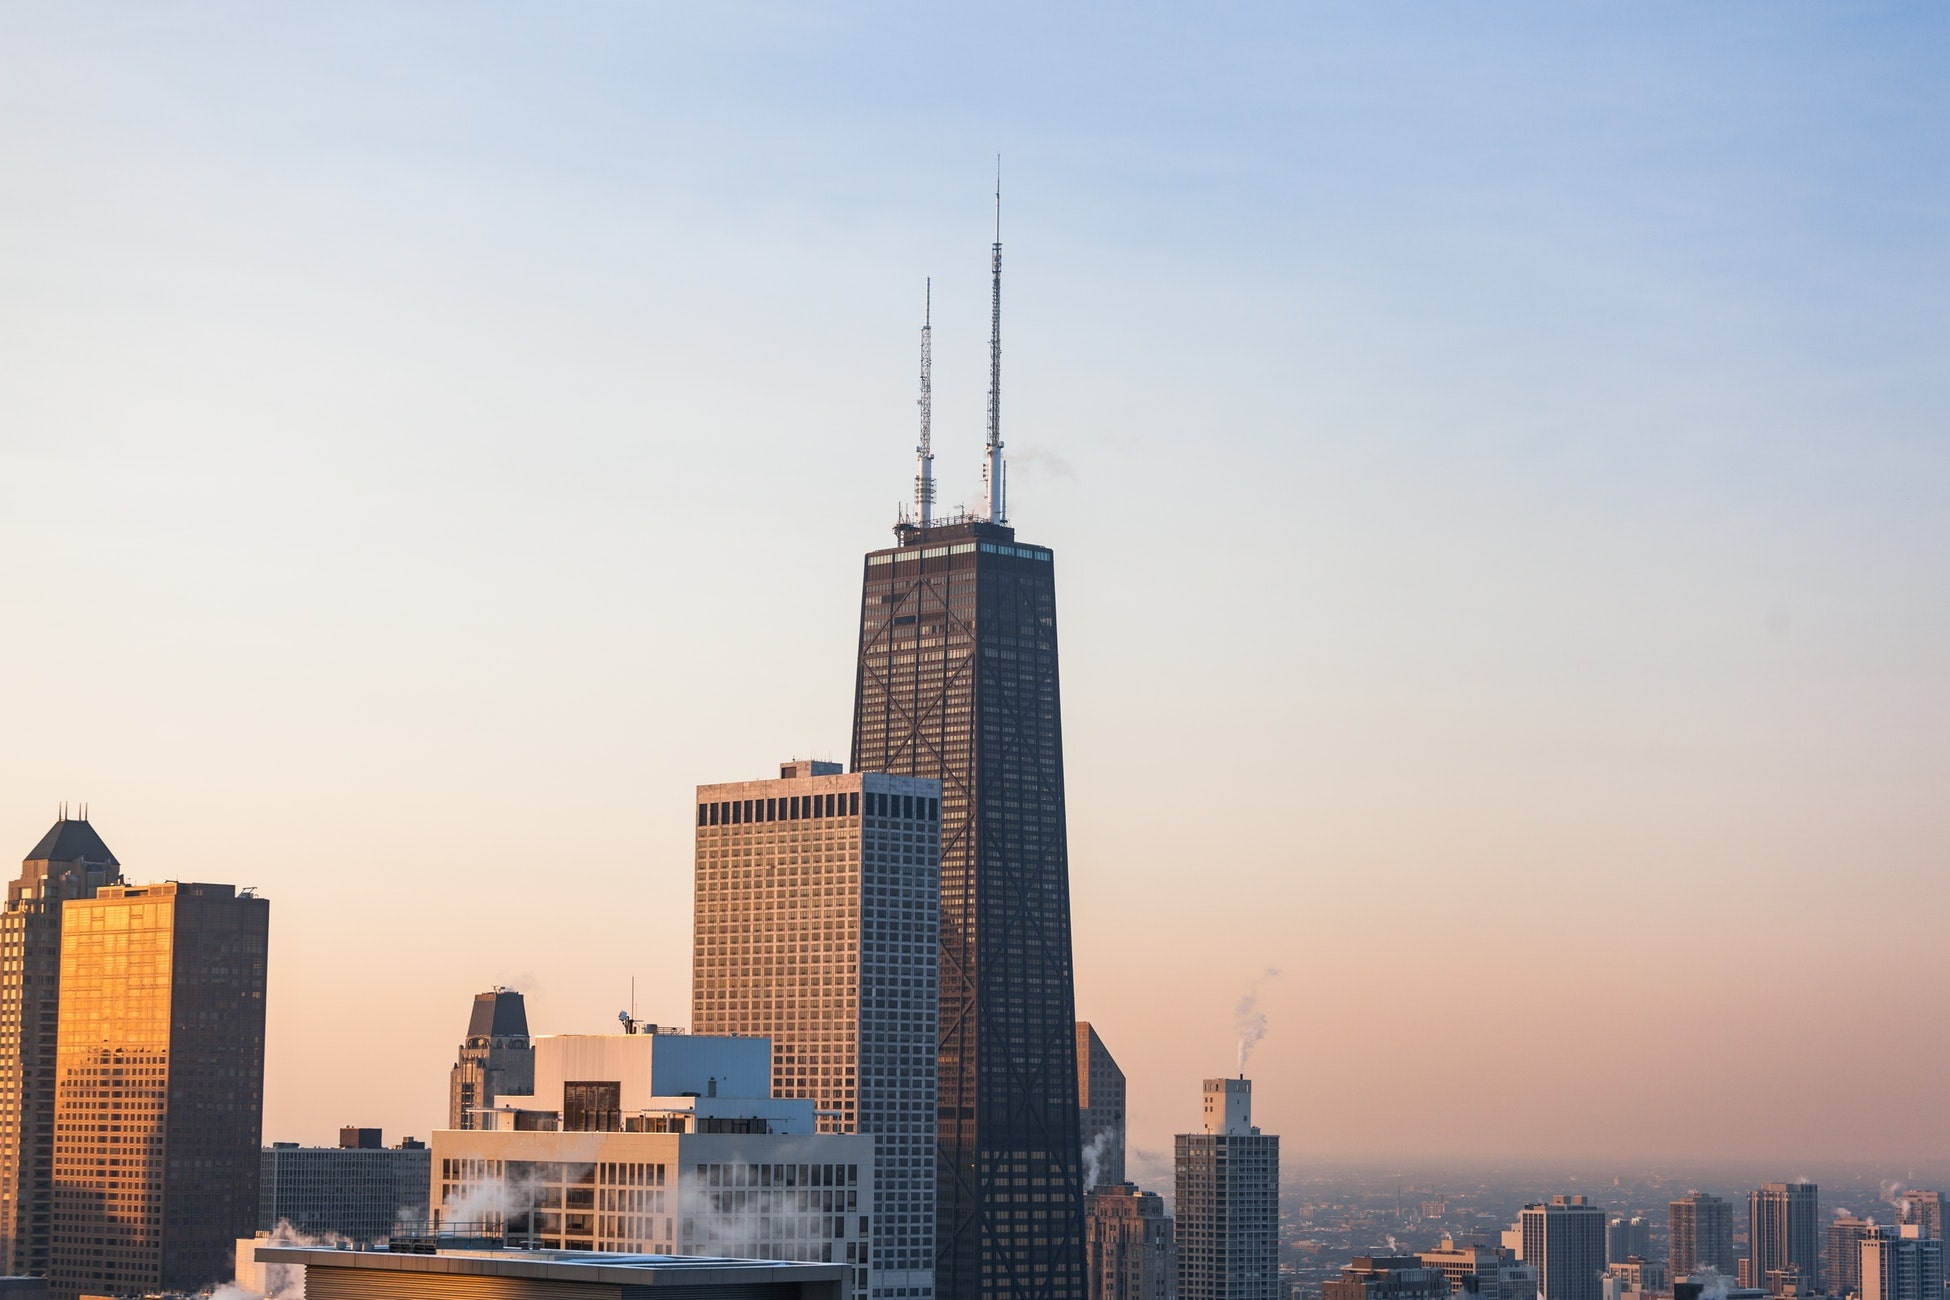 Chicago: The Staycation